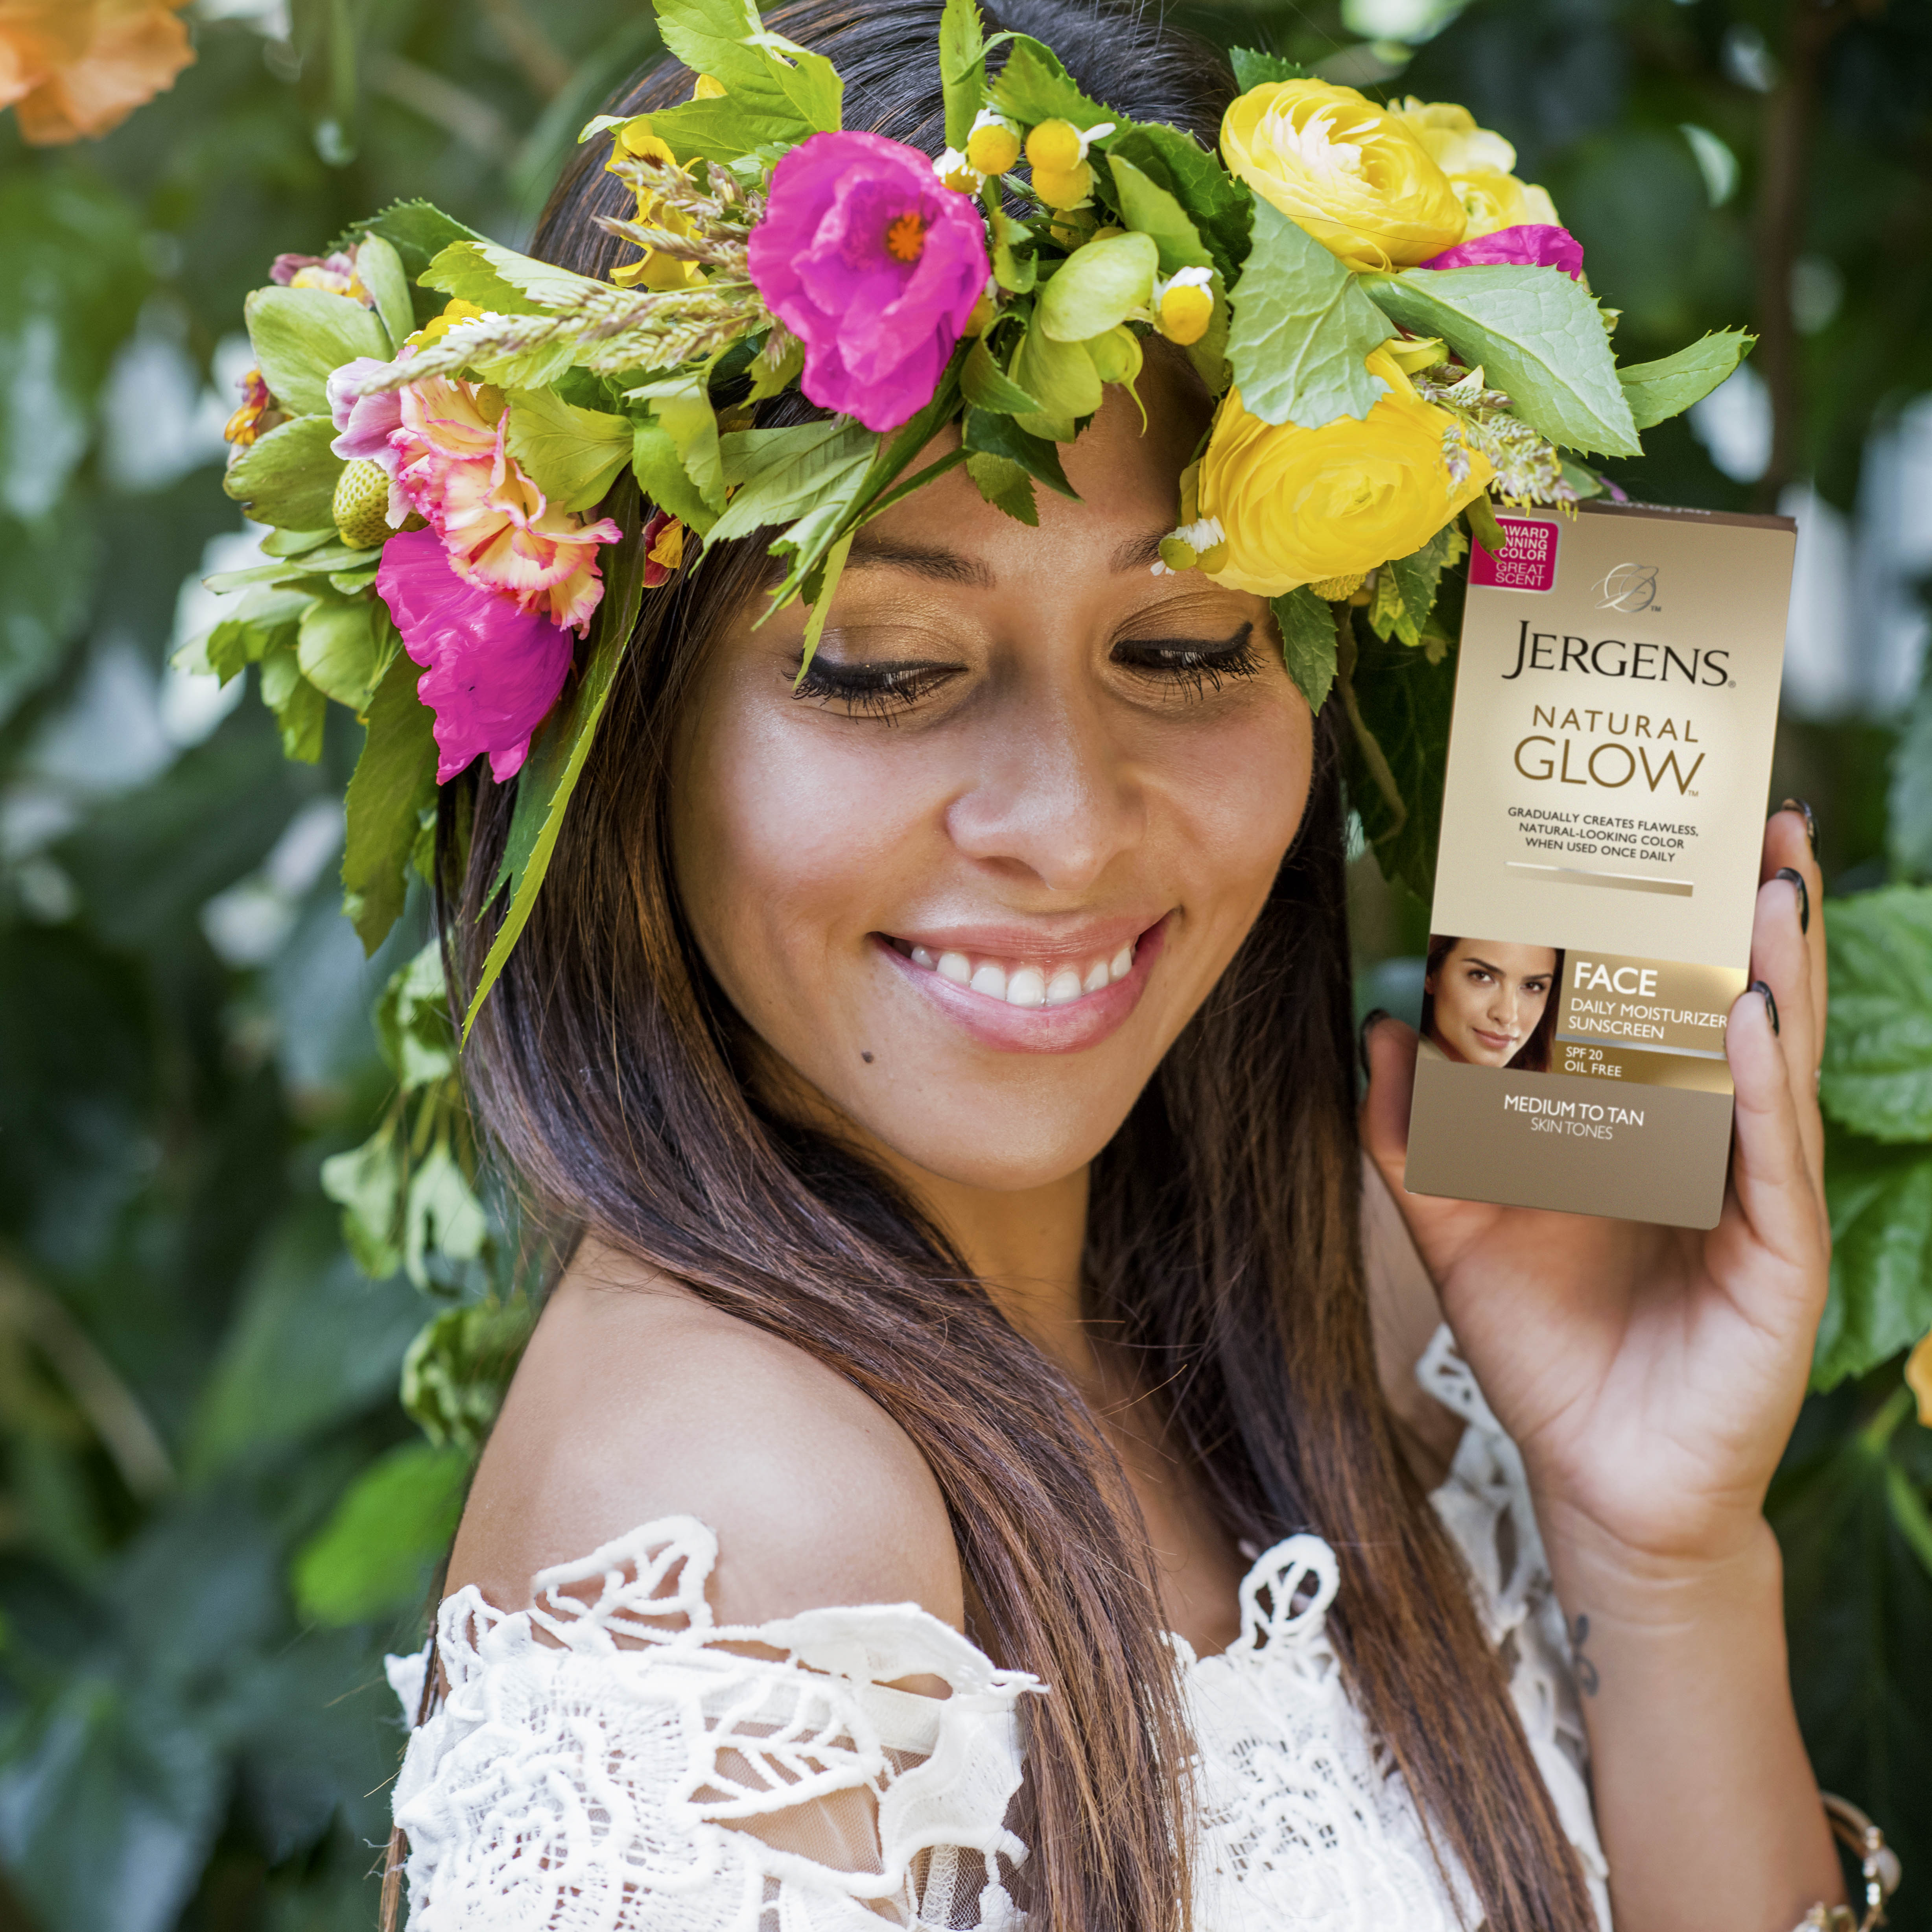 Model with floral headpiece holding Jergens Face Tanner